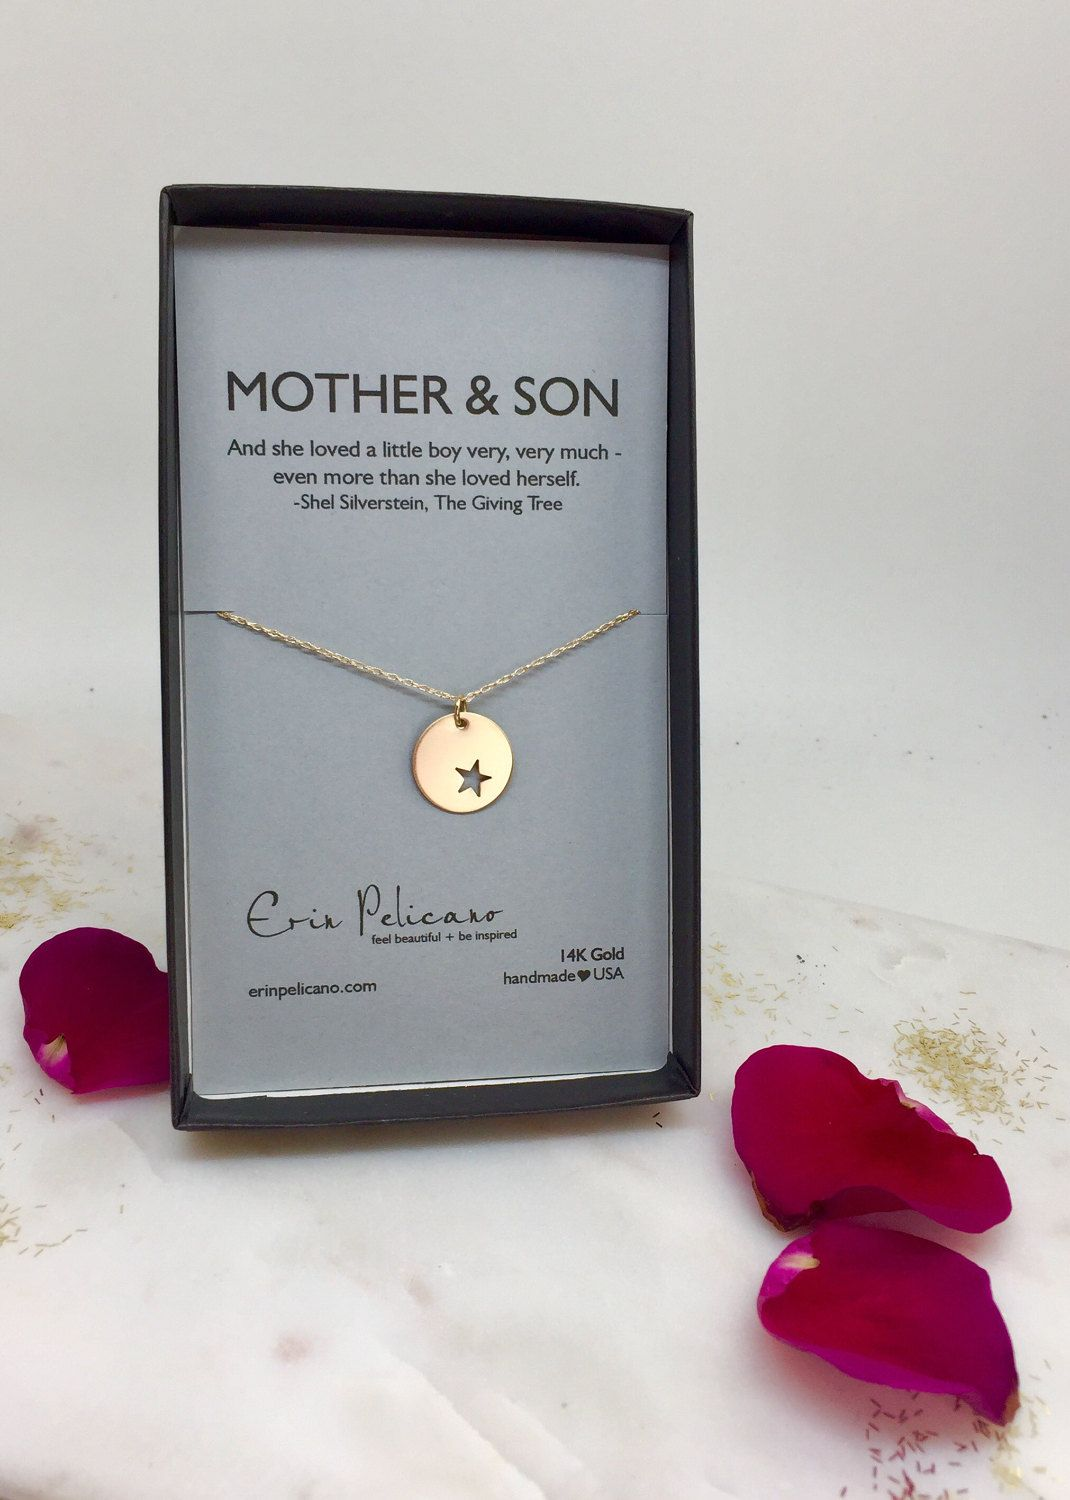 Mom Necklace From Son Luxury Gold Jewelry Birthday Gift For Her Mother Of Groom New By Erinpelicano On